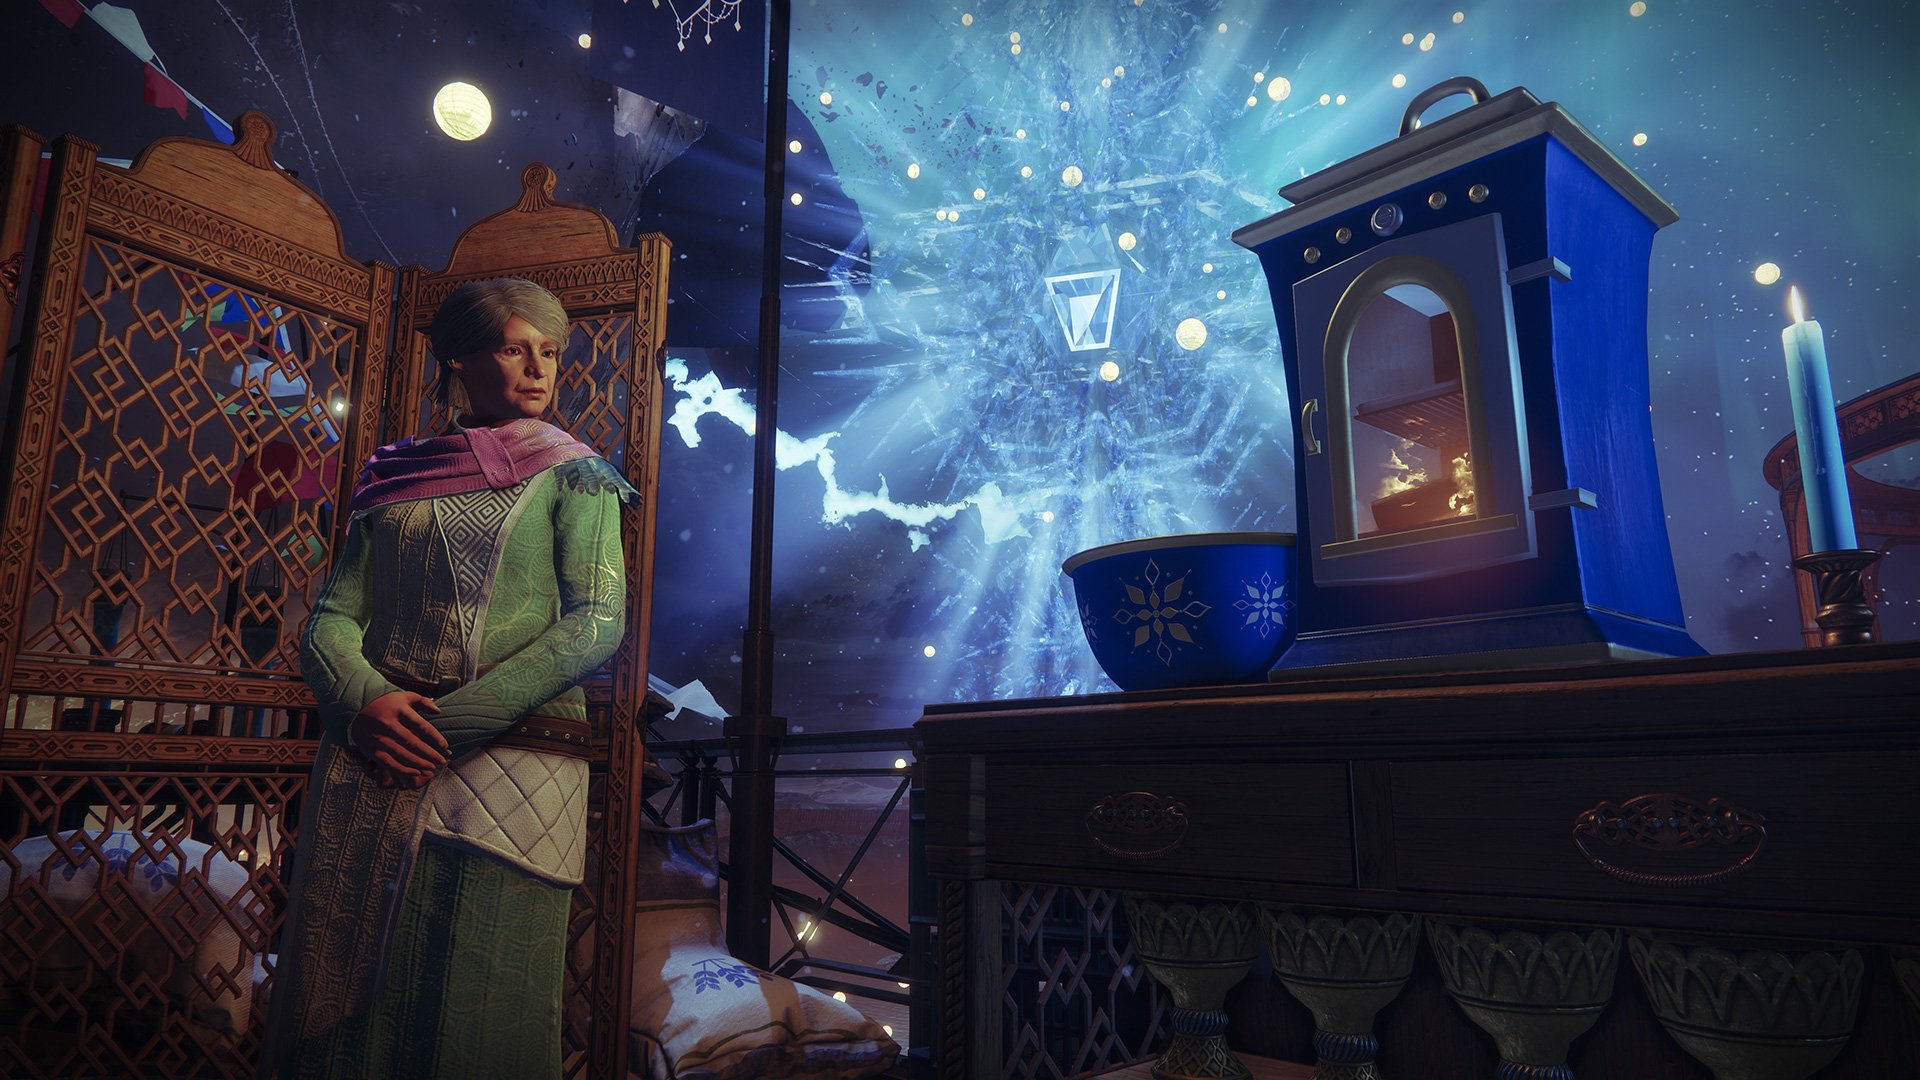 Eva stands next to her oven used for the Dawning Holiday Baking Recipes